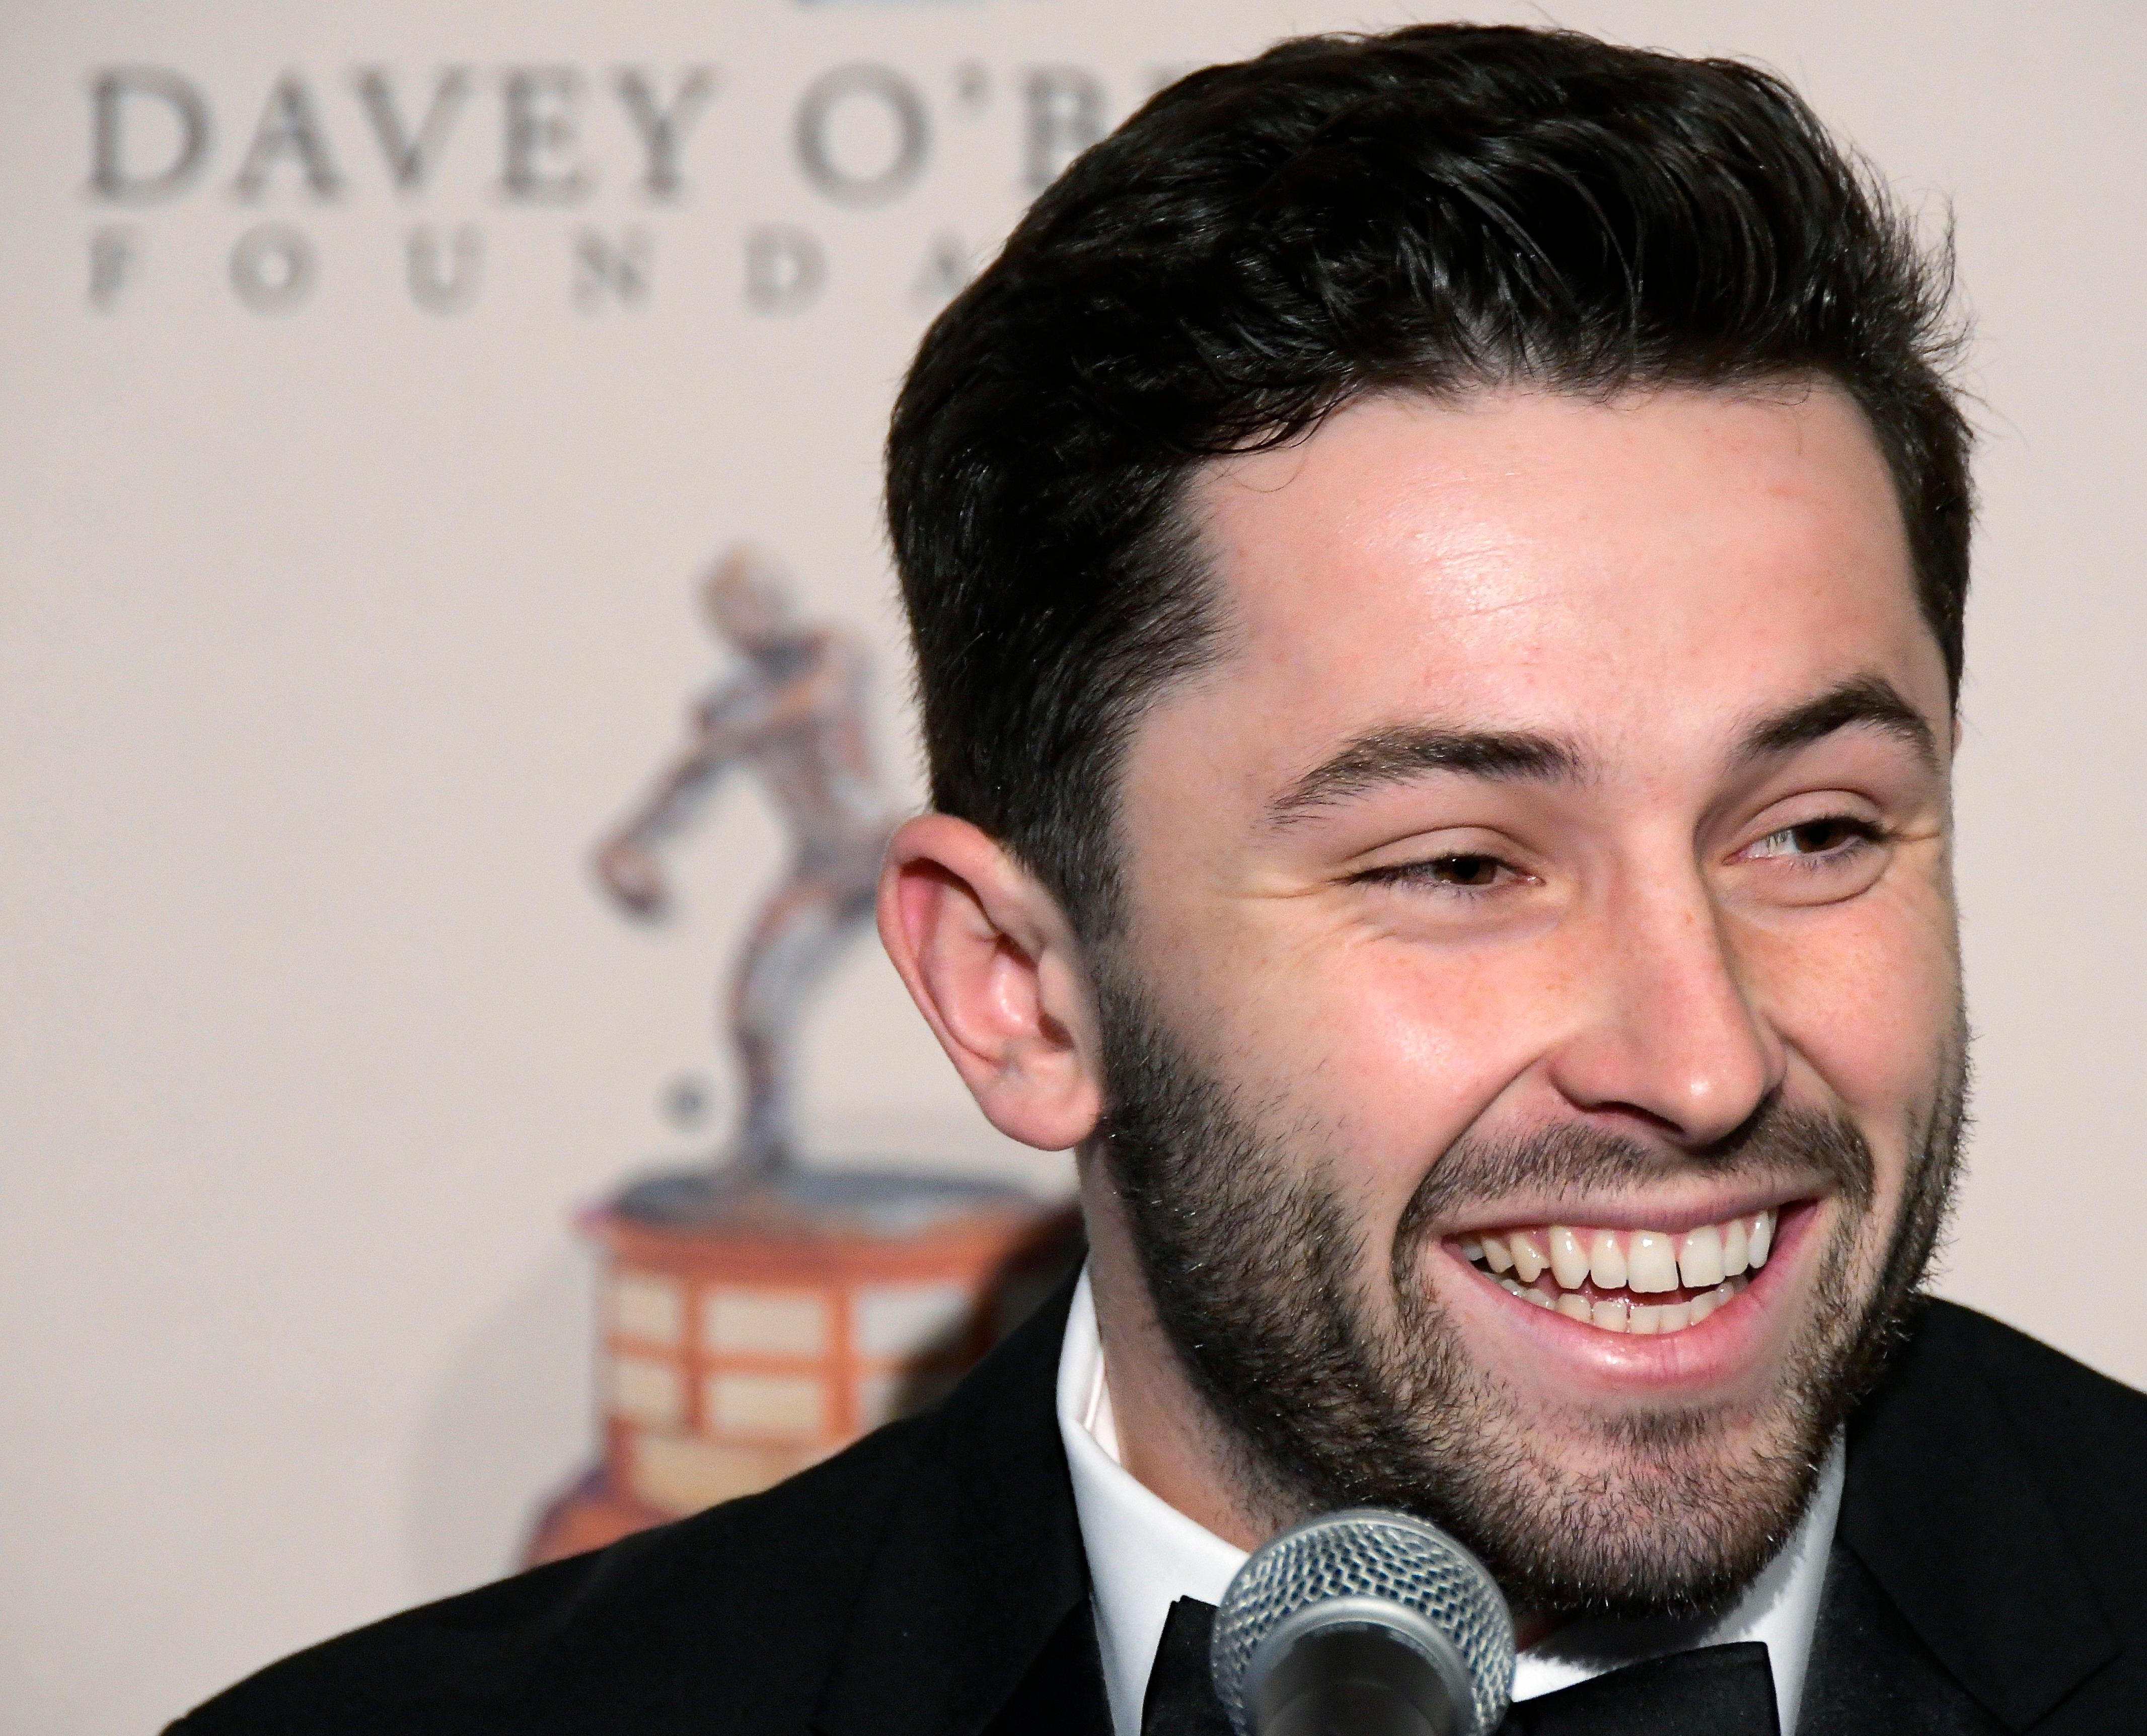 The Davey O'Brien National Quarterback Award winner Baker Mayfield smiles during a news conference at the Fort Worth Club in Fort Worth, Texas, Monday, Feb. 19, 2018. (Max Faulkner/Star-Telegram via AP)